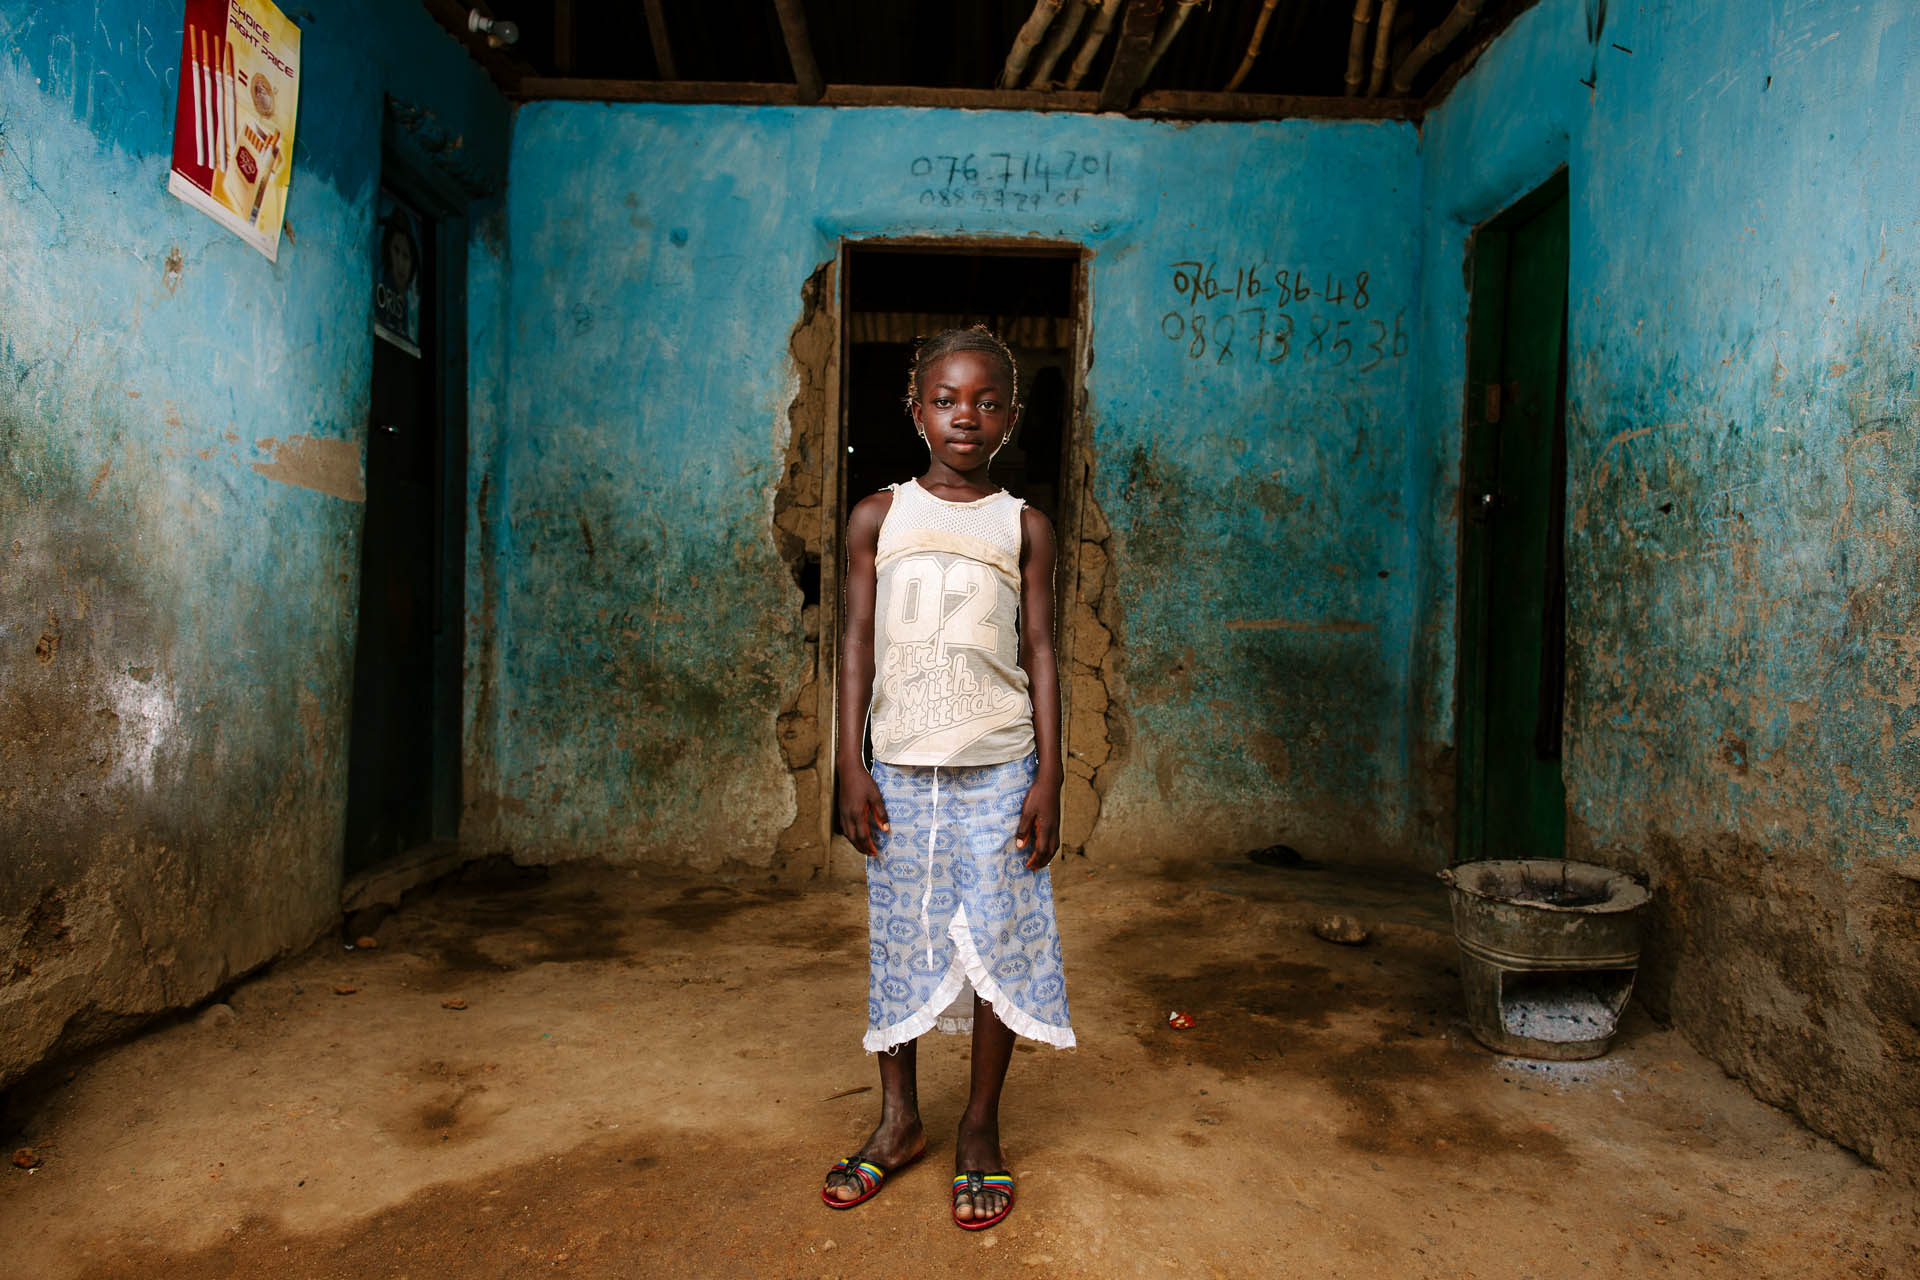 Aminata Sheriff, pupil at Swawou School, Sierra Leone. Commissioned by Swawou School Foundation and Orkidstudio